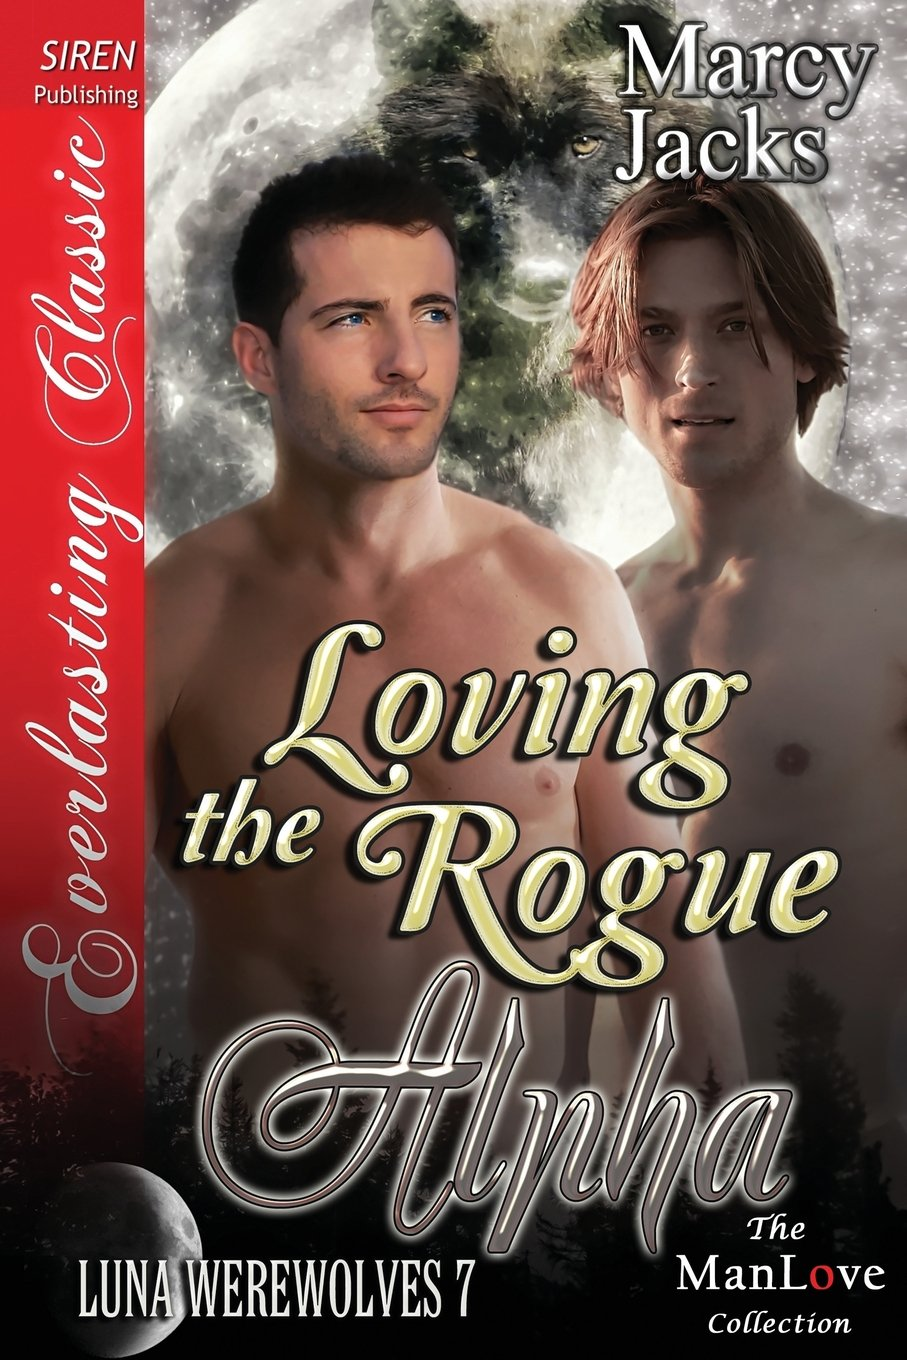 Download Loving the Rogue Alpha [Luna Werewolves 7] (Siren Publishing Everlasting Classic Manlove) ebook